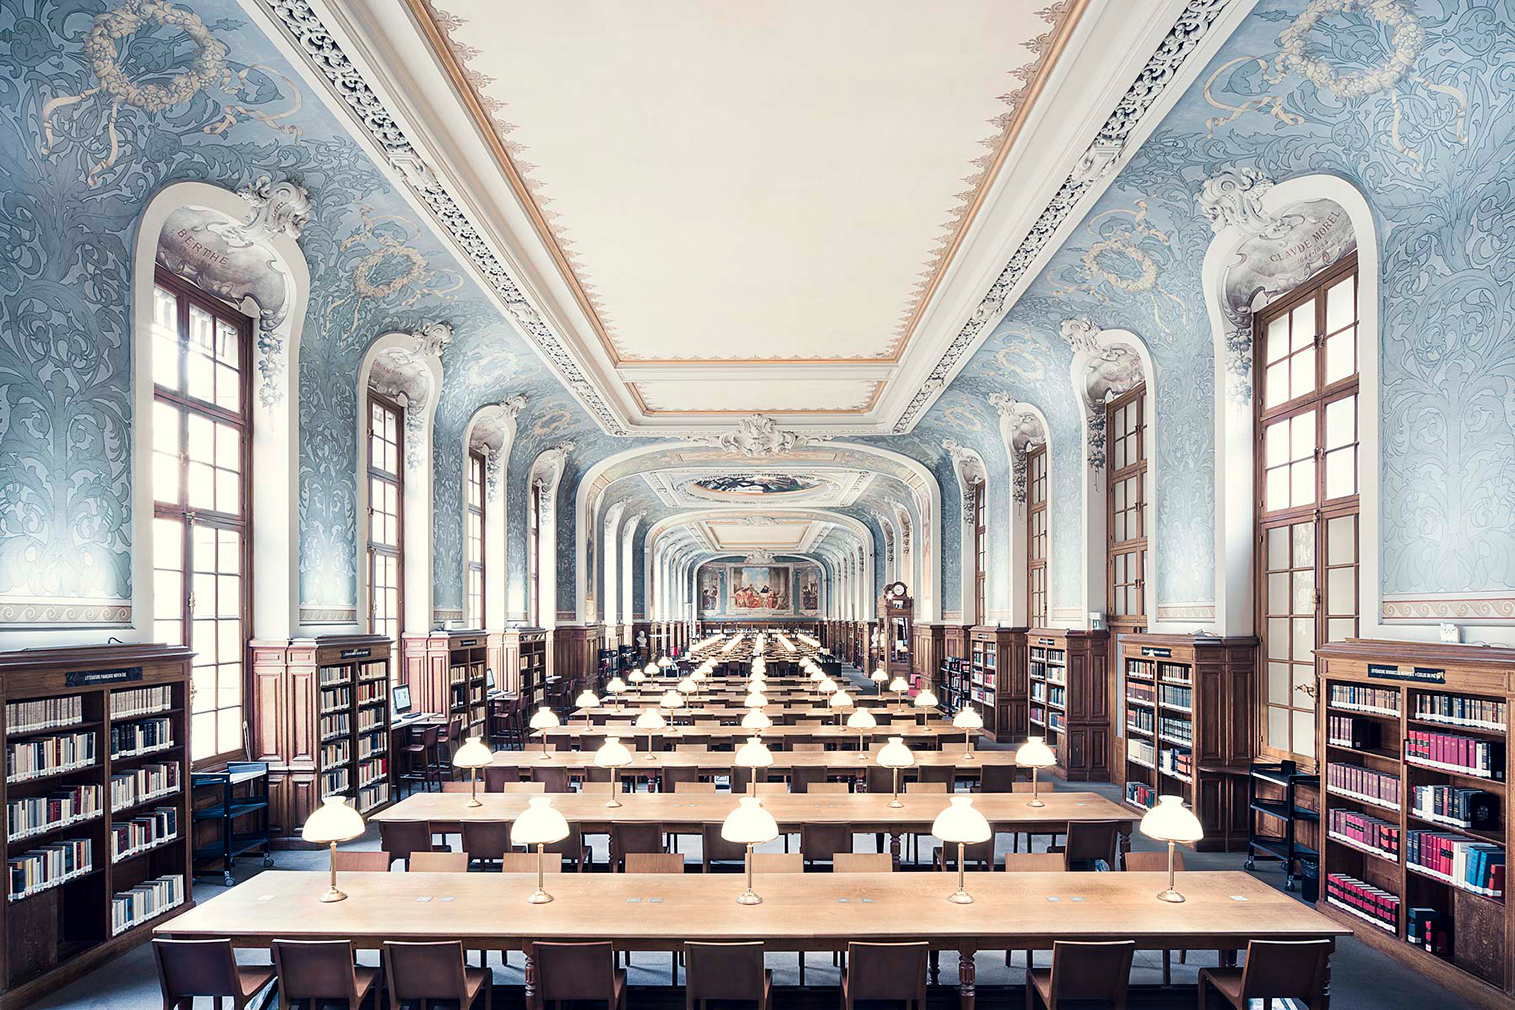 The world's most beautiful libraries: Bibliothèque de la Sorbonne. Photography: Thibaud Poirier